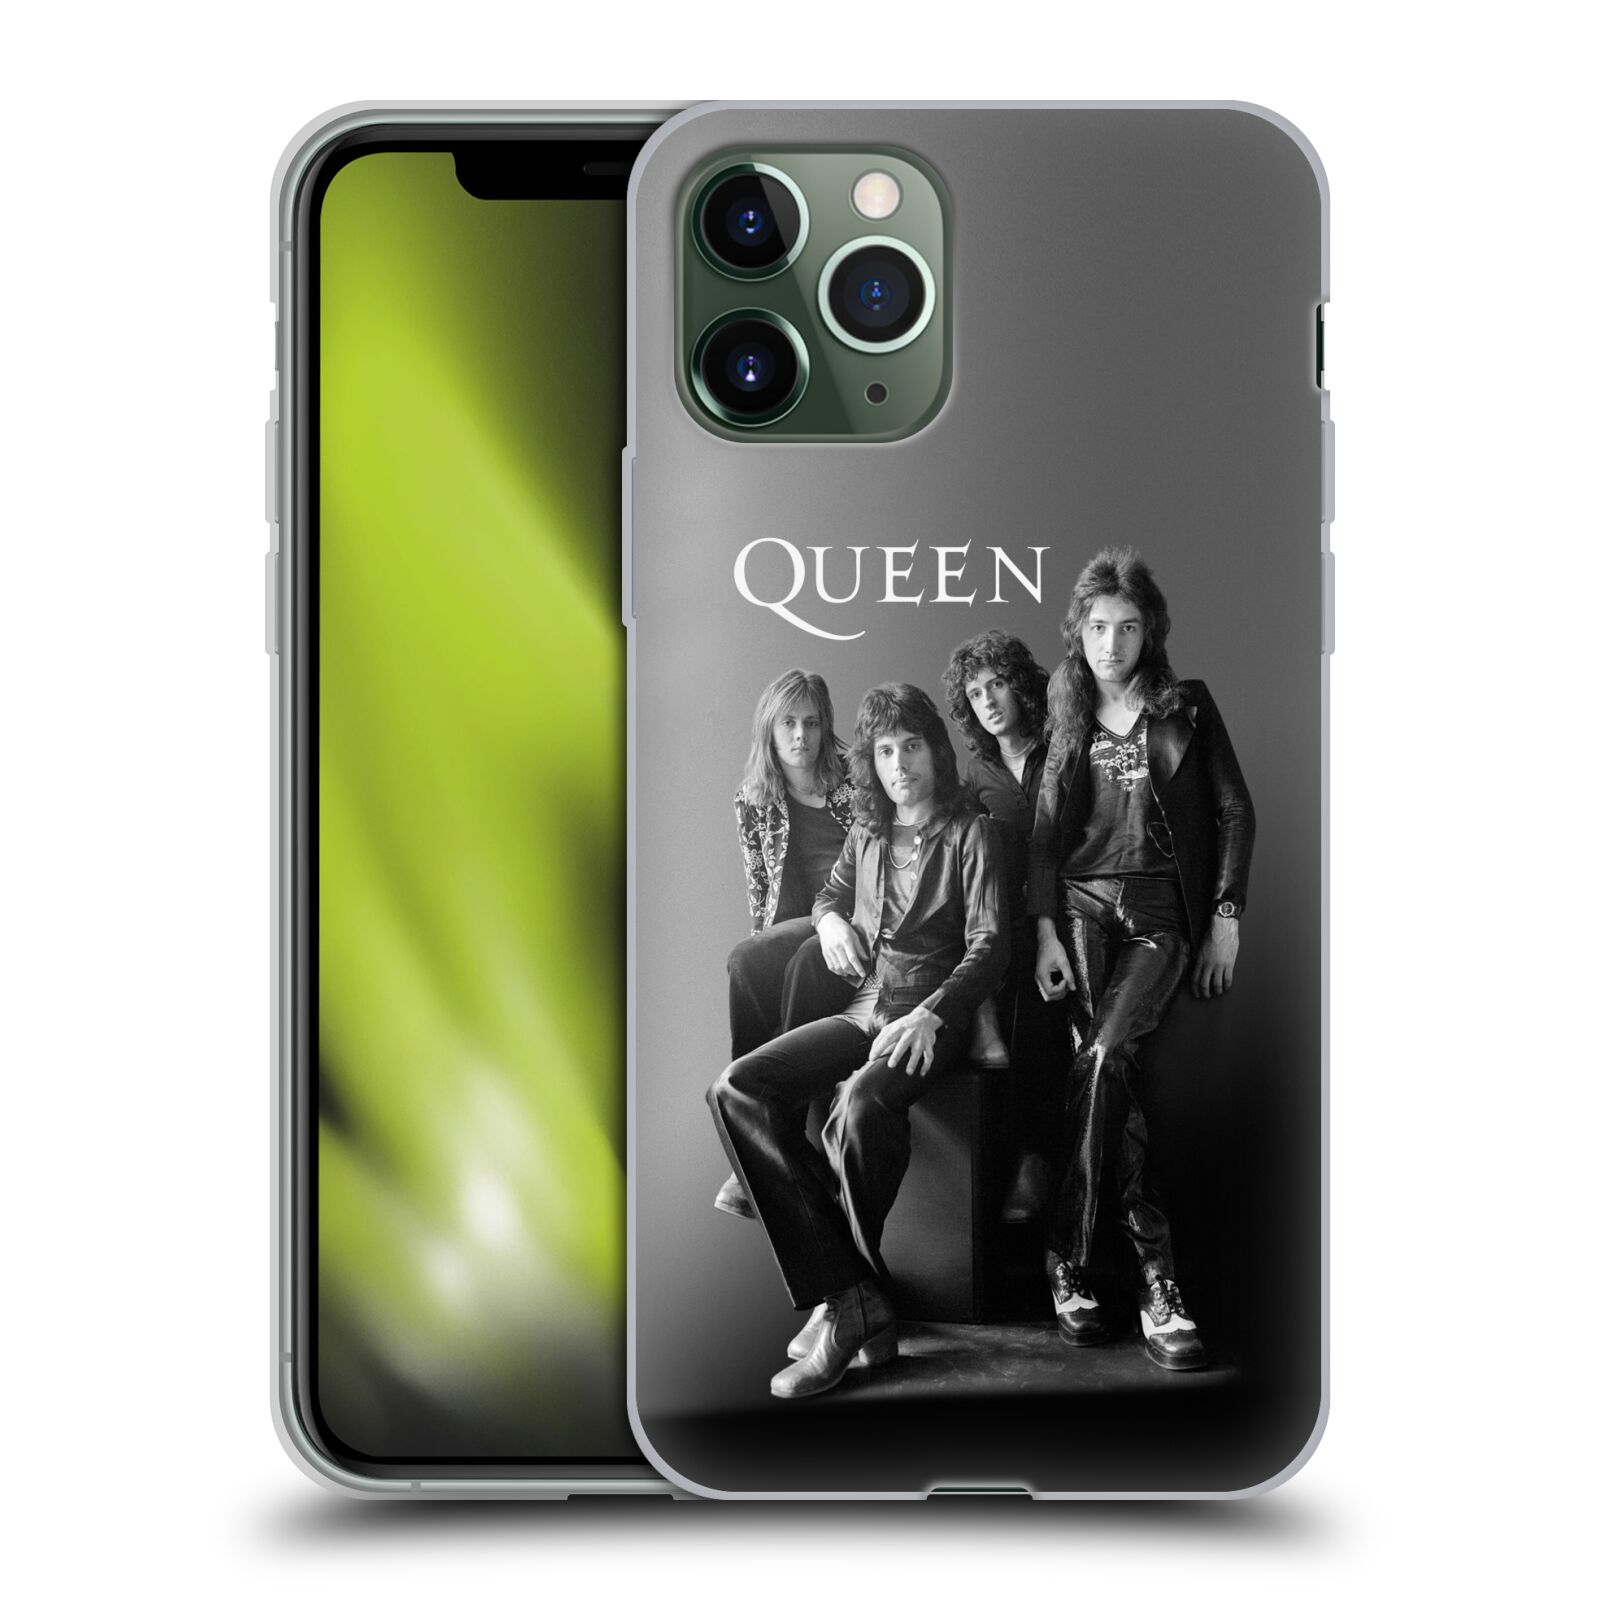 original obaly iphone x - Silikonové pouzdro na mobil Apple iPhone 11 Pro - Head Case - Queen - Skupina